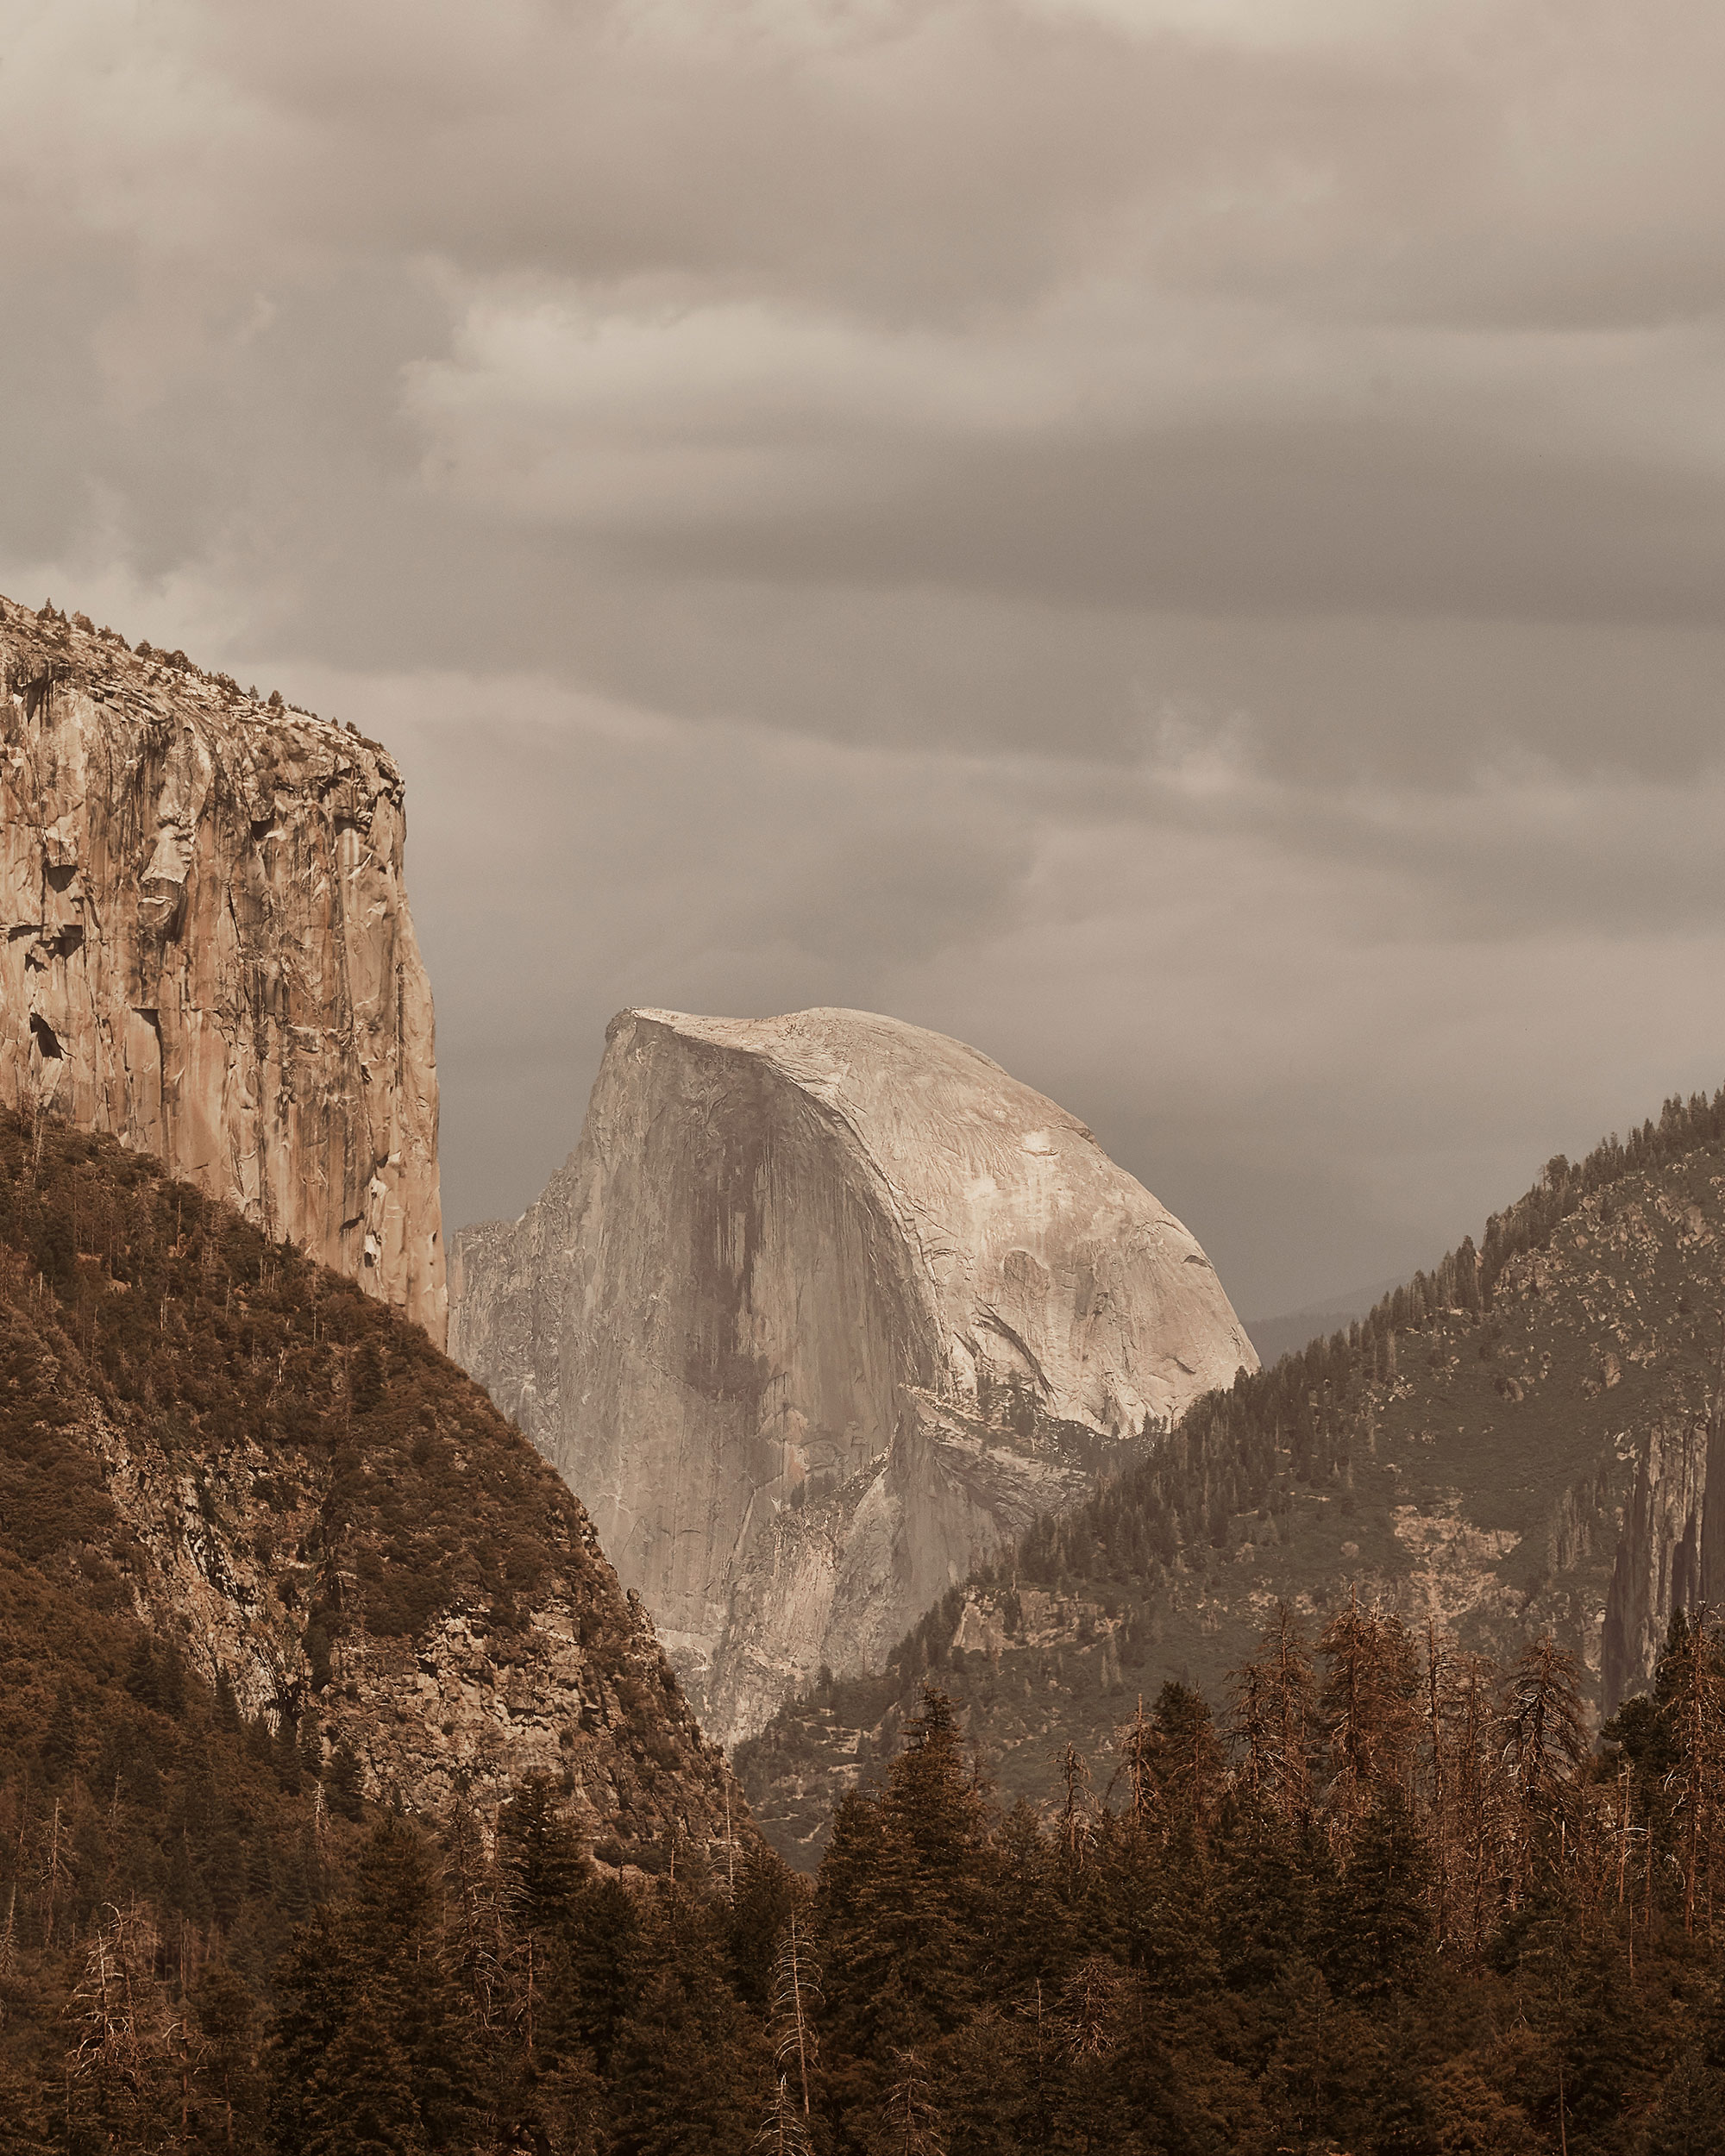 Yosemite National Park - Stephen Denton Photography, Los Angeles, California based interior & hospitality photographer